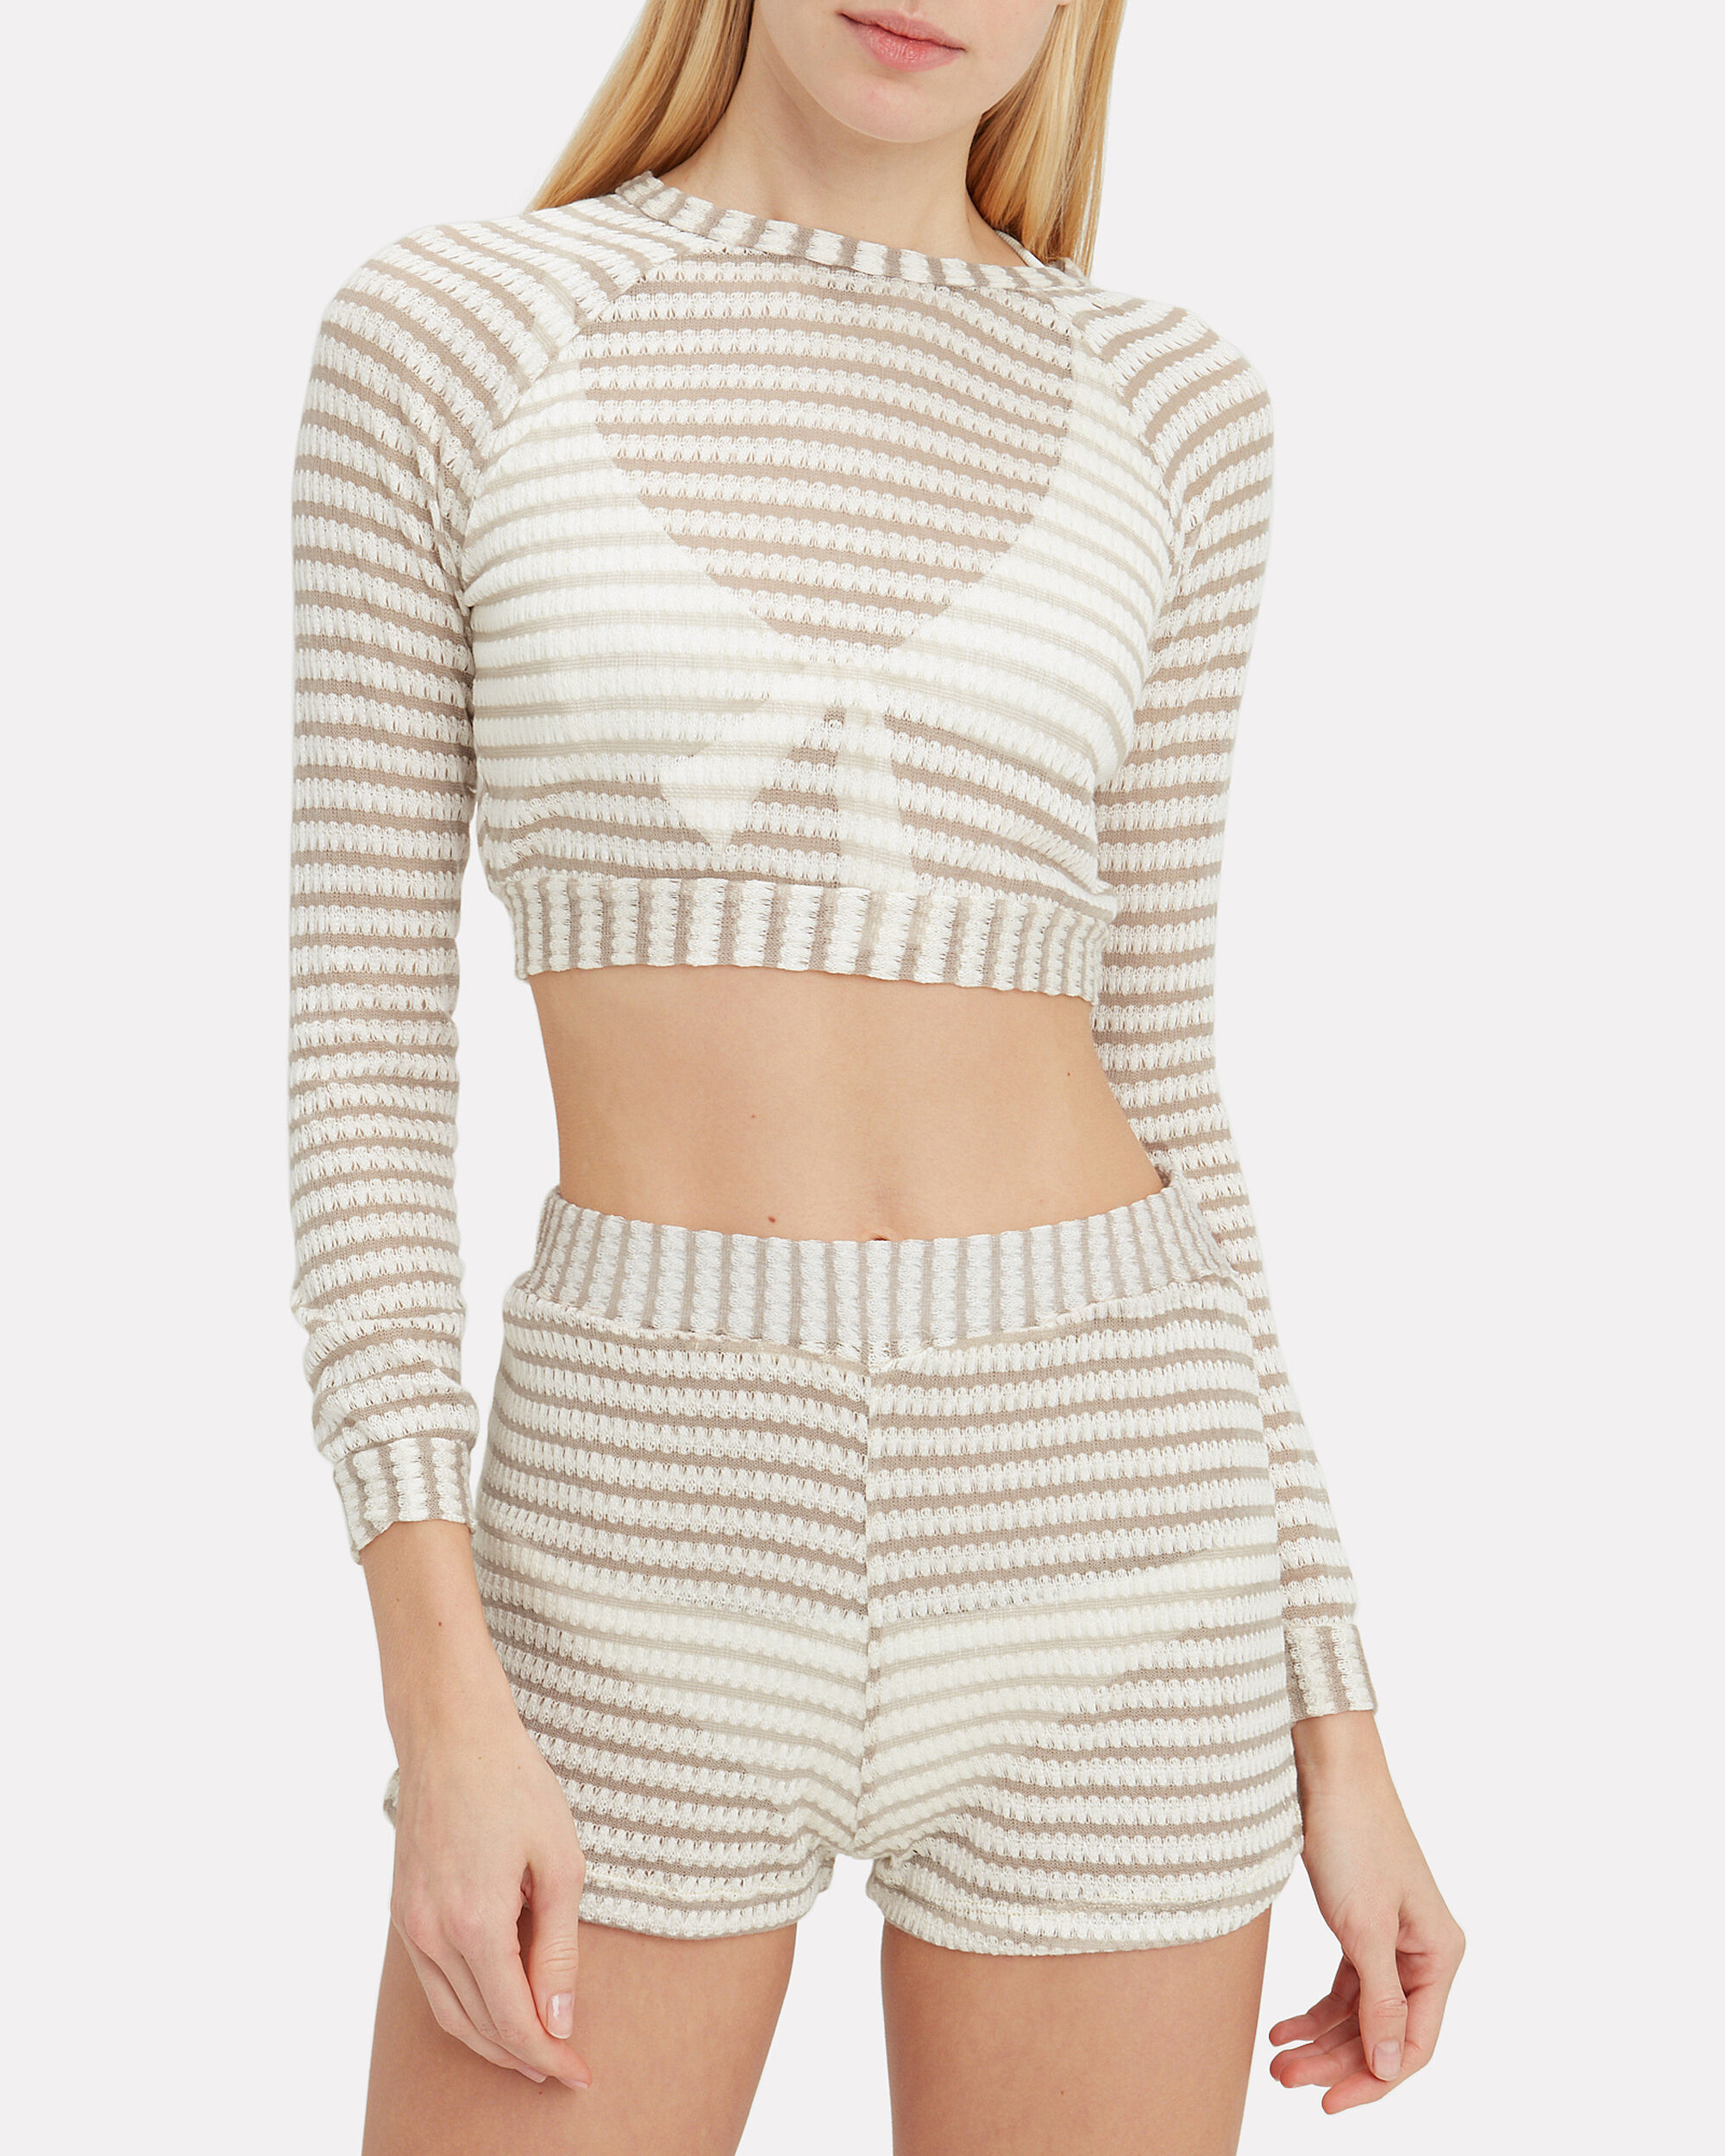 Sunny Knit Sweater, WHITE/TAUPE, hi-res